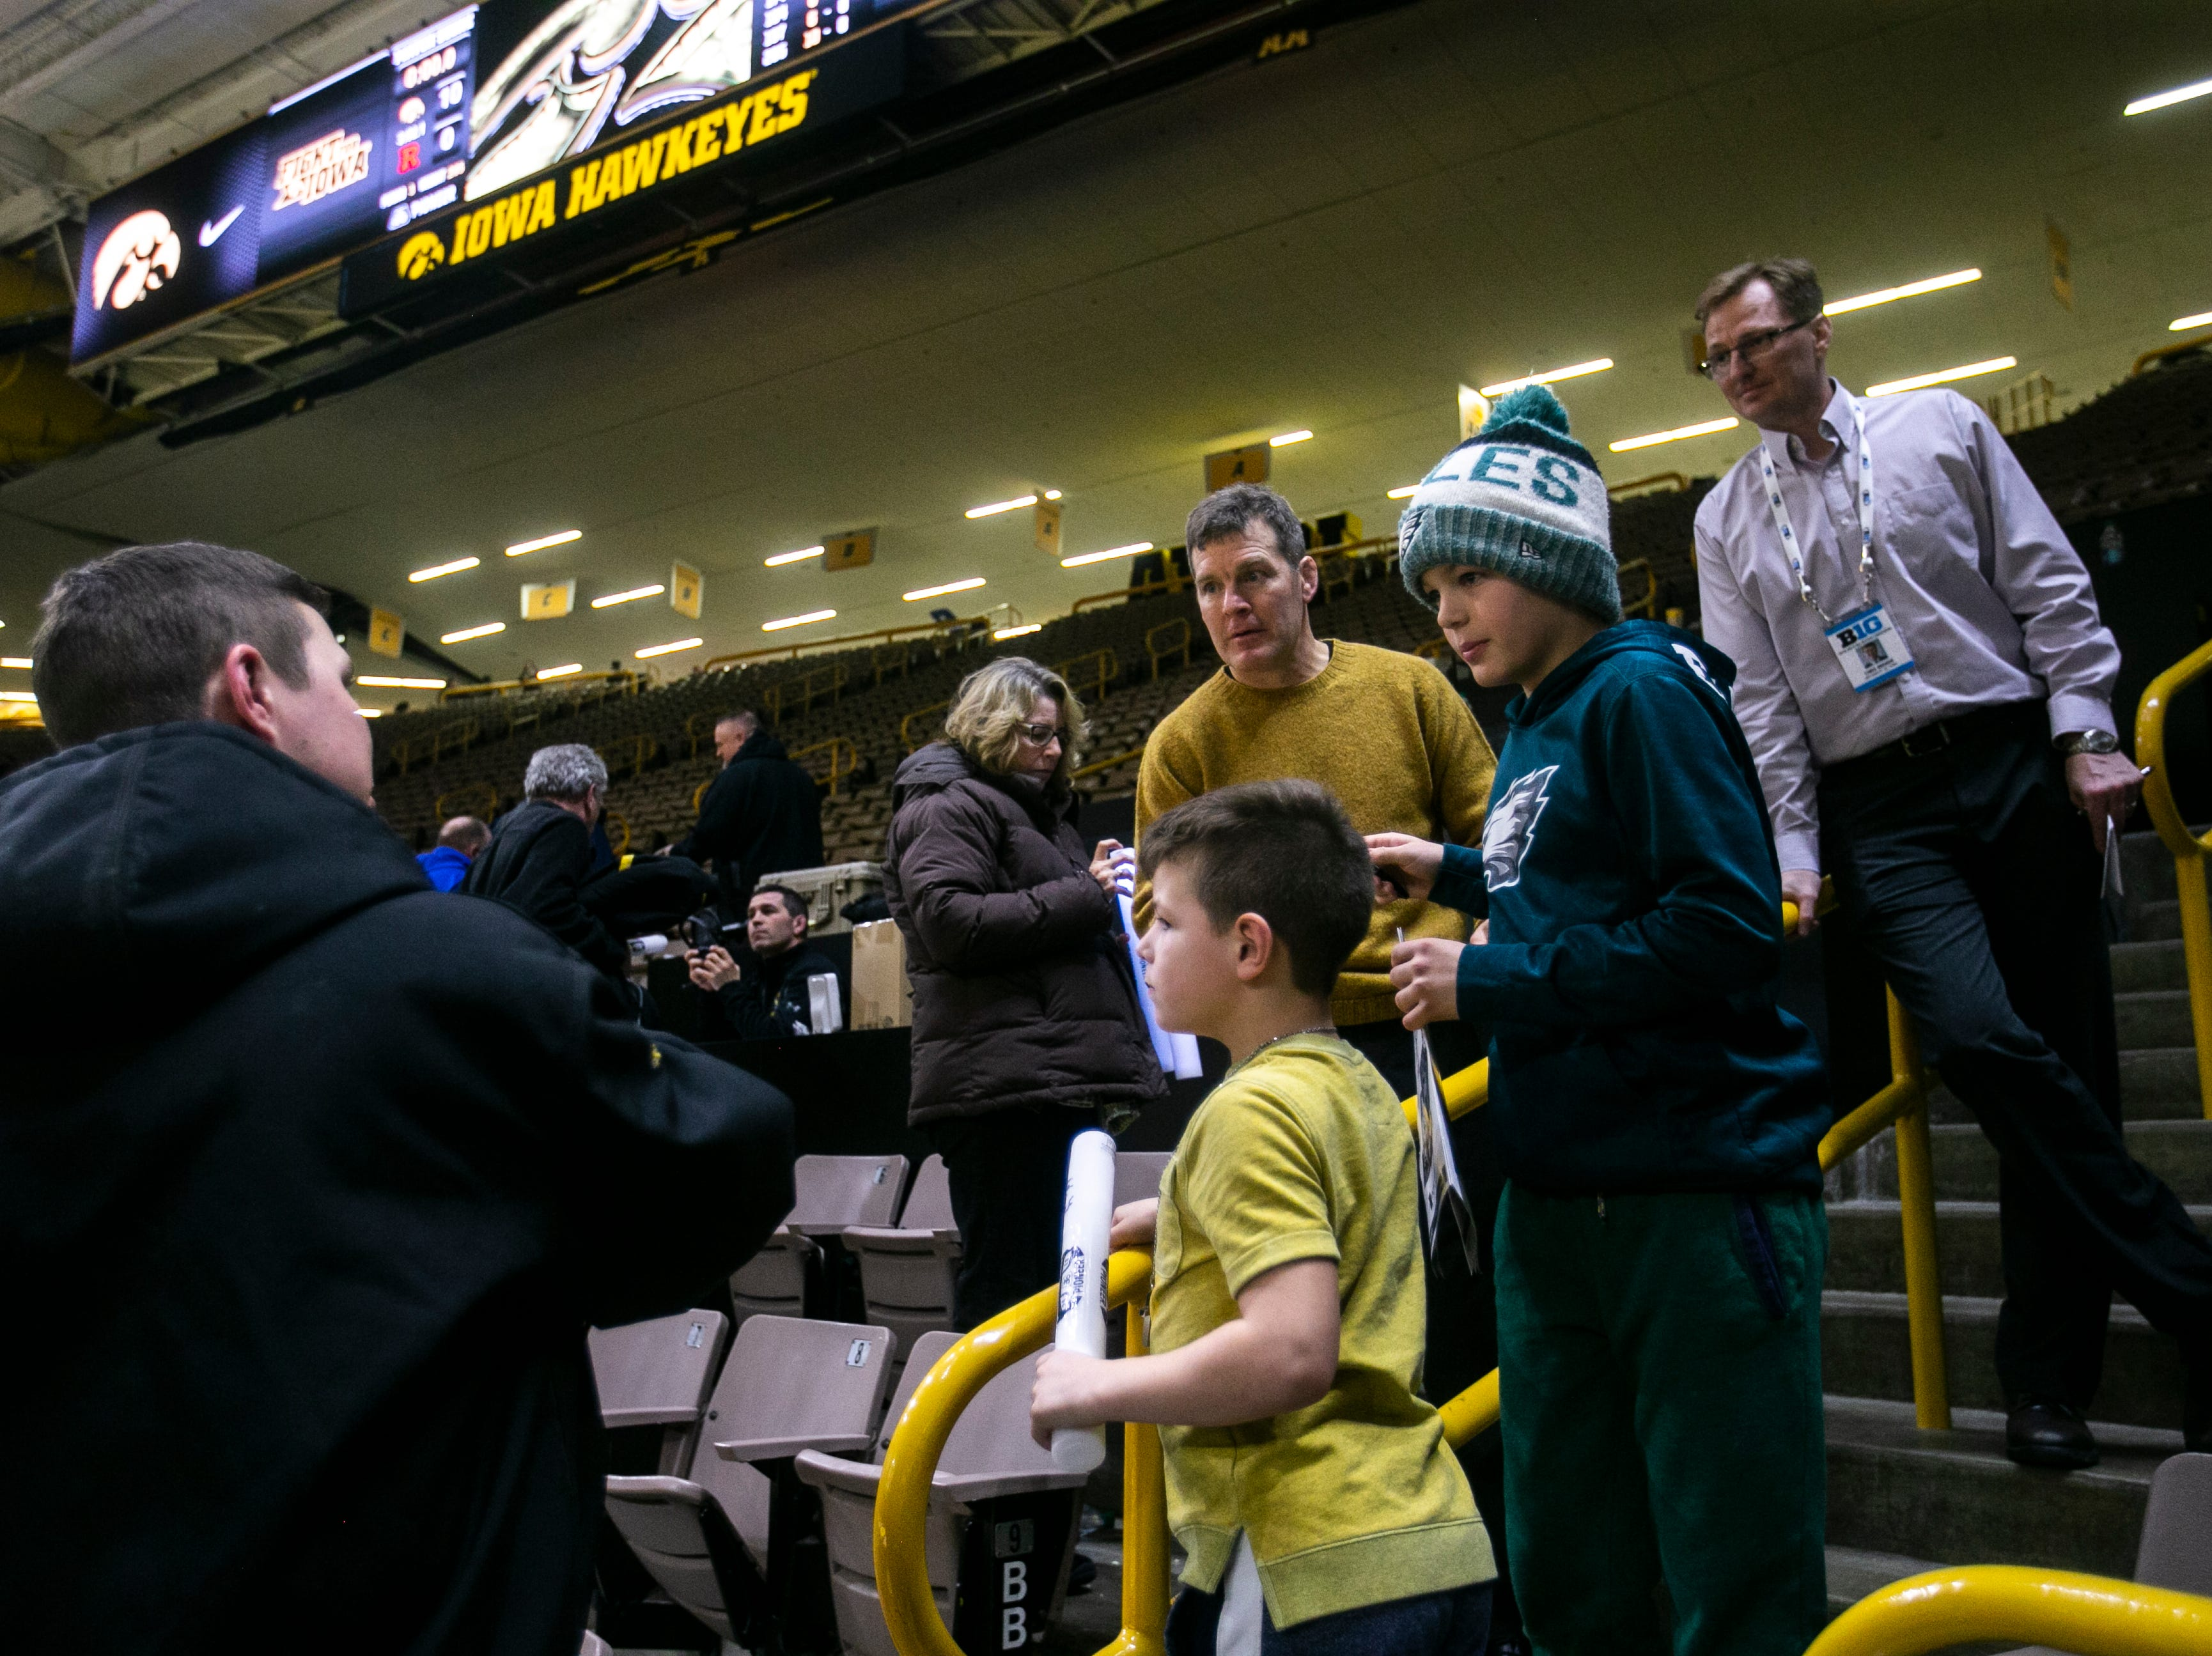 Iowa head coach Tom Brands signs autographs for fans after a NCAA Big Ten Conference wrestling dual on Friday, Jan. 18, 2019, at Carver-Hawkeye Arena in Iowa City, Iowa.